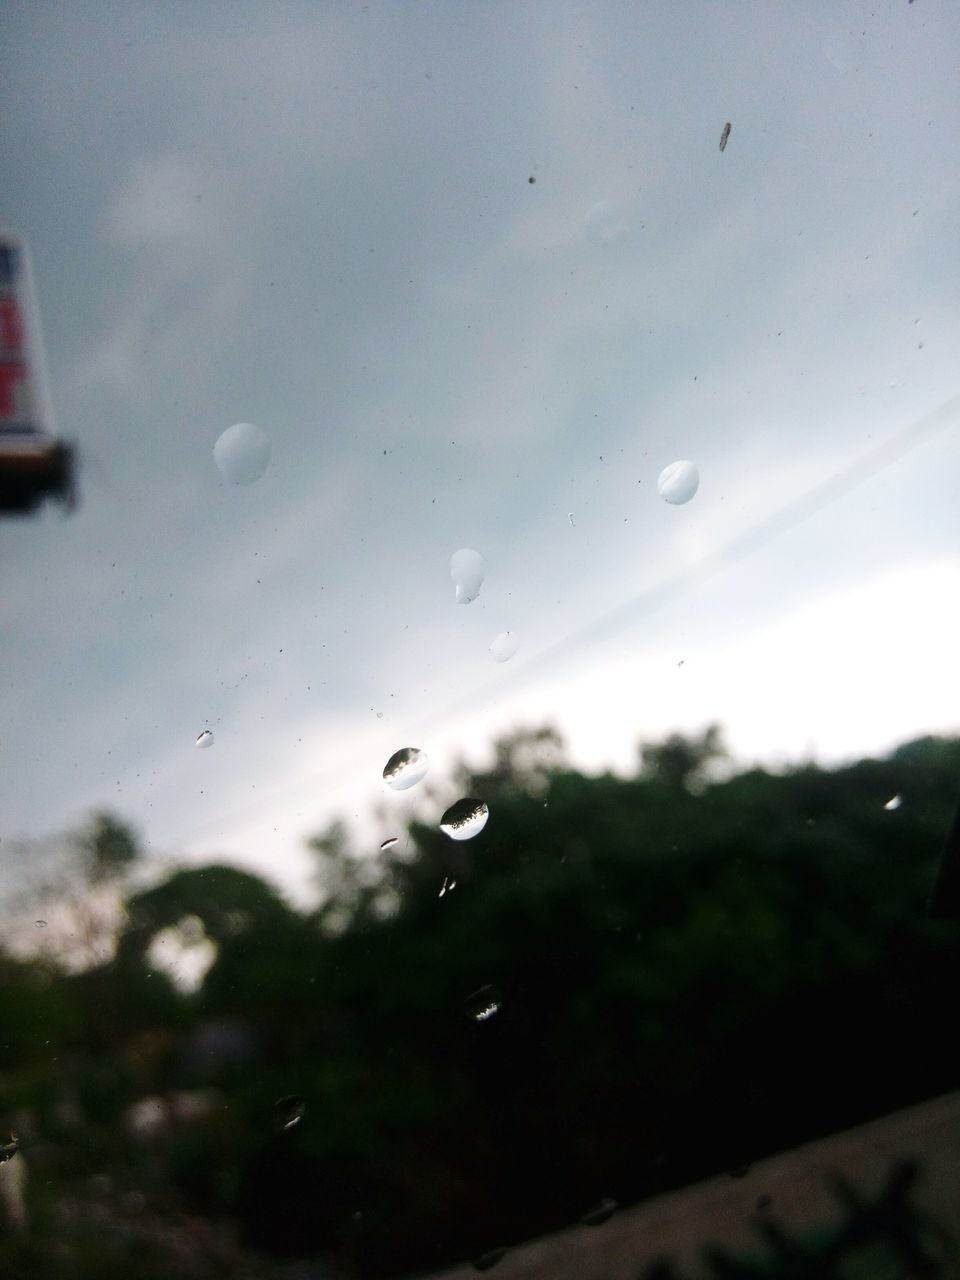 drop, water, wet, raindrop, window, no people, nature, sky, focus on foreground, close-up, day, outdoors, tree, beauty in nature